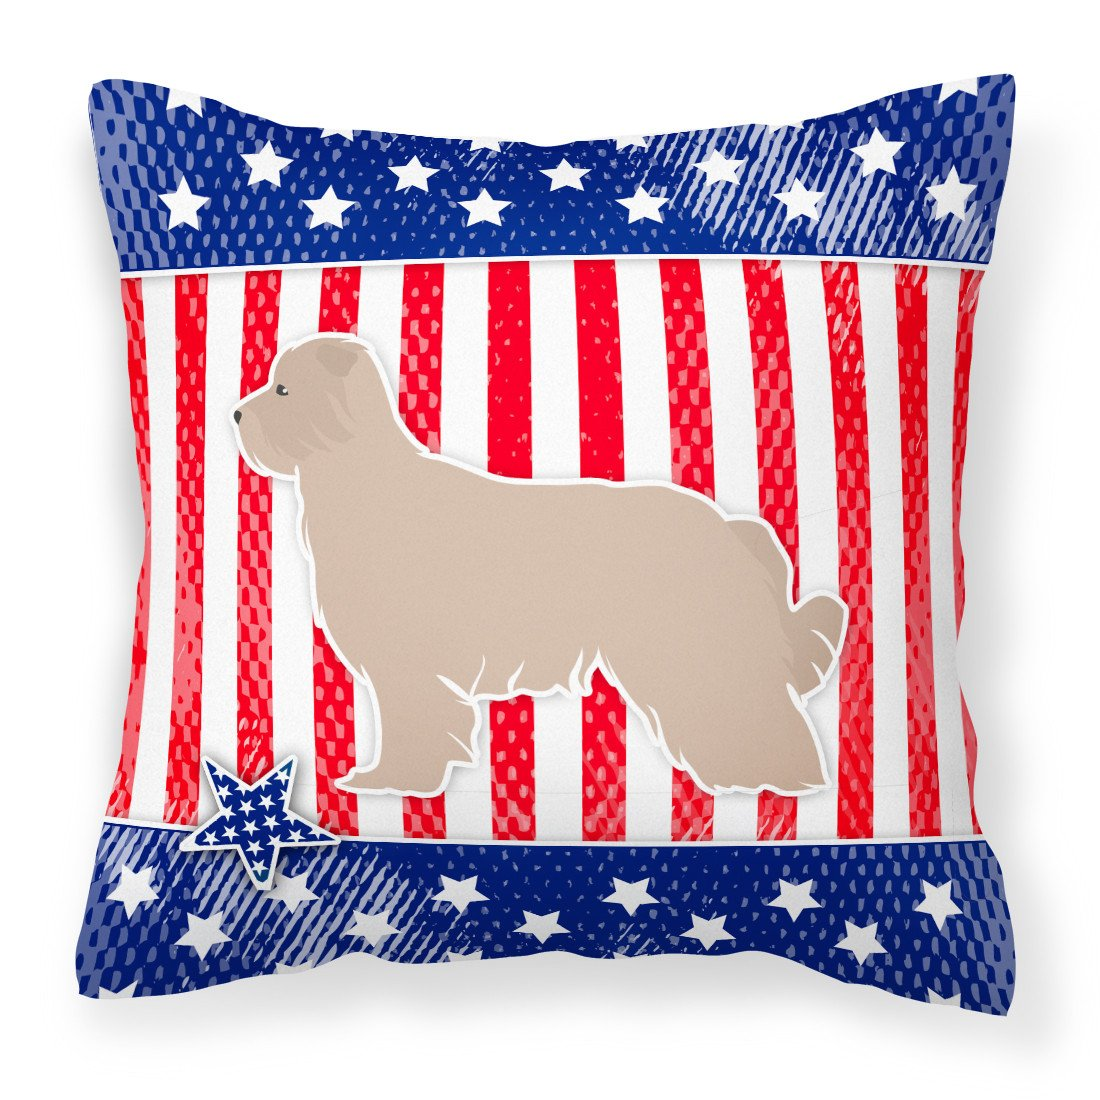 USA Patriotic Pyrenean Shepherd Fabric Decorative Pillow BB3318PW1818 by Caroline's Treasures